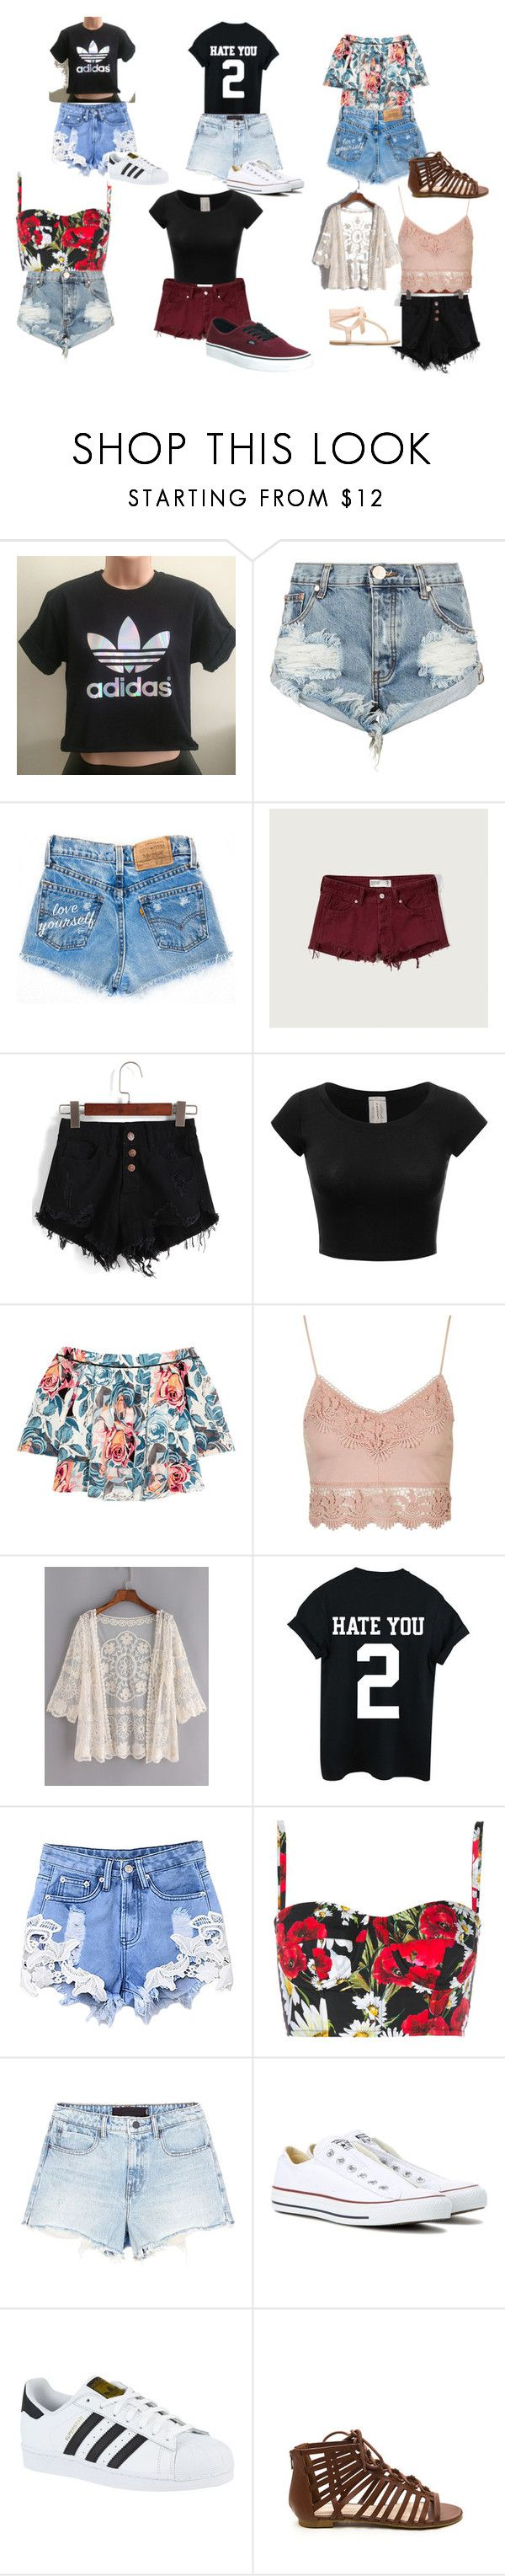 """How to wear shorts"" by jade-love-02-8 on Polyvore featuring adidas, One Teaspoon, Abercrombie & Fitch, Elizabeth and James, Topshop, Dolce&Gabbana, Alexander Wang, Converse and Vans"